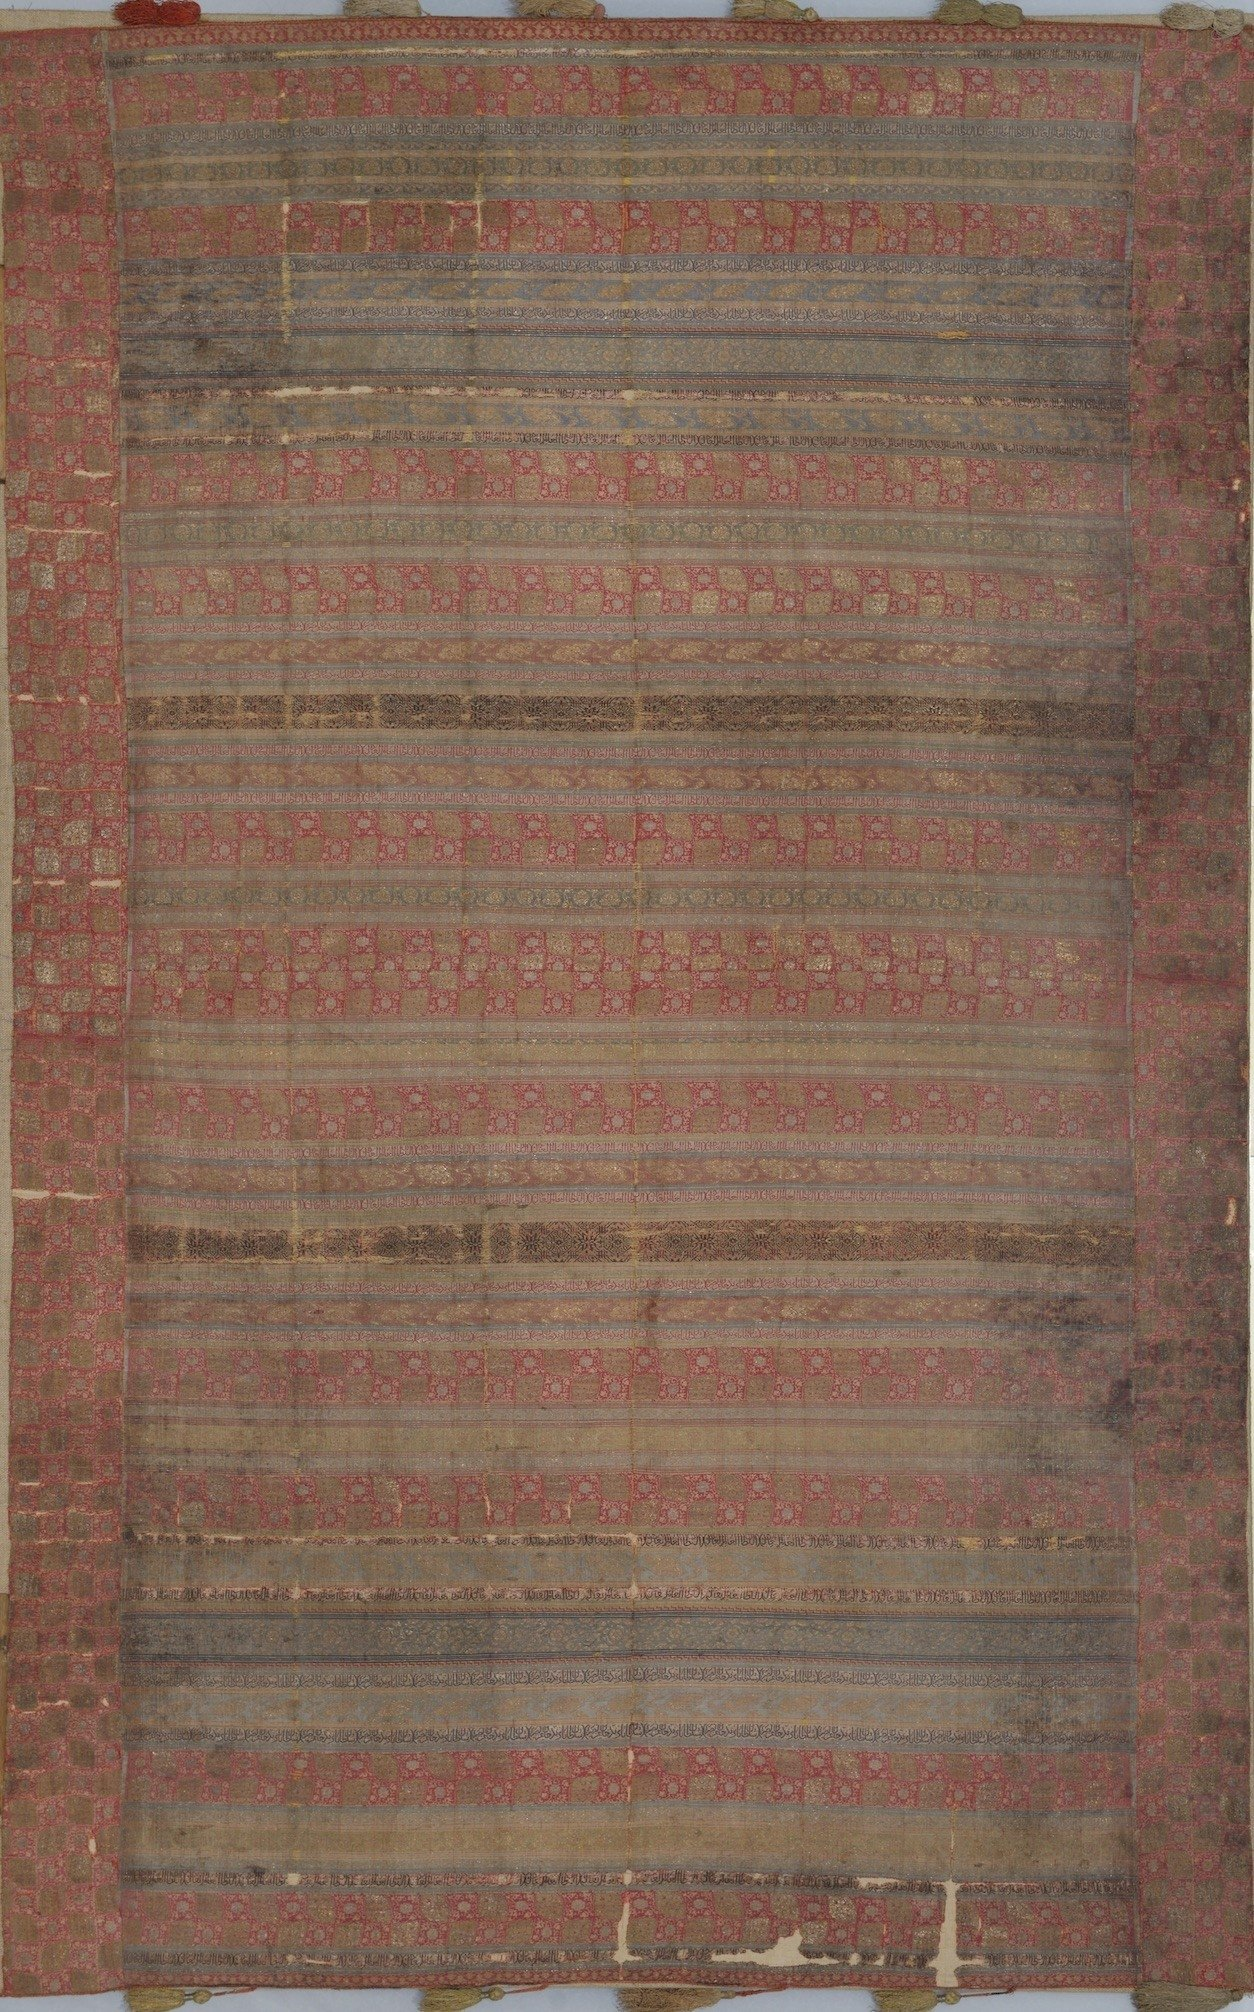 The Studenica Silk, with inscriptions naming Sultan Bayezıd, featuring silk and metal thread, lampas weave, possibly from Ottoman vilayet Bursa, 1389–1402. (Courtesy of Branko Strugar Studios)